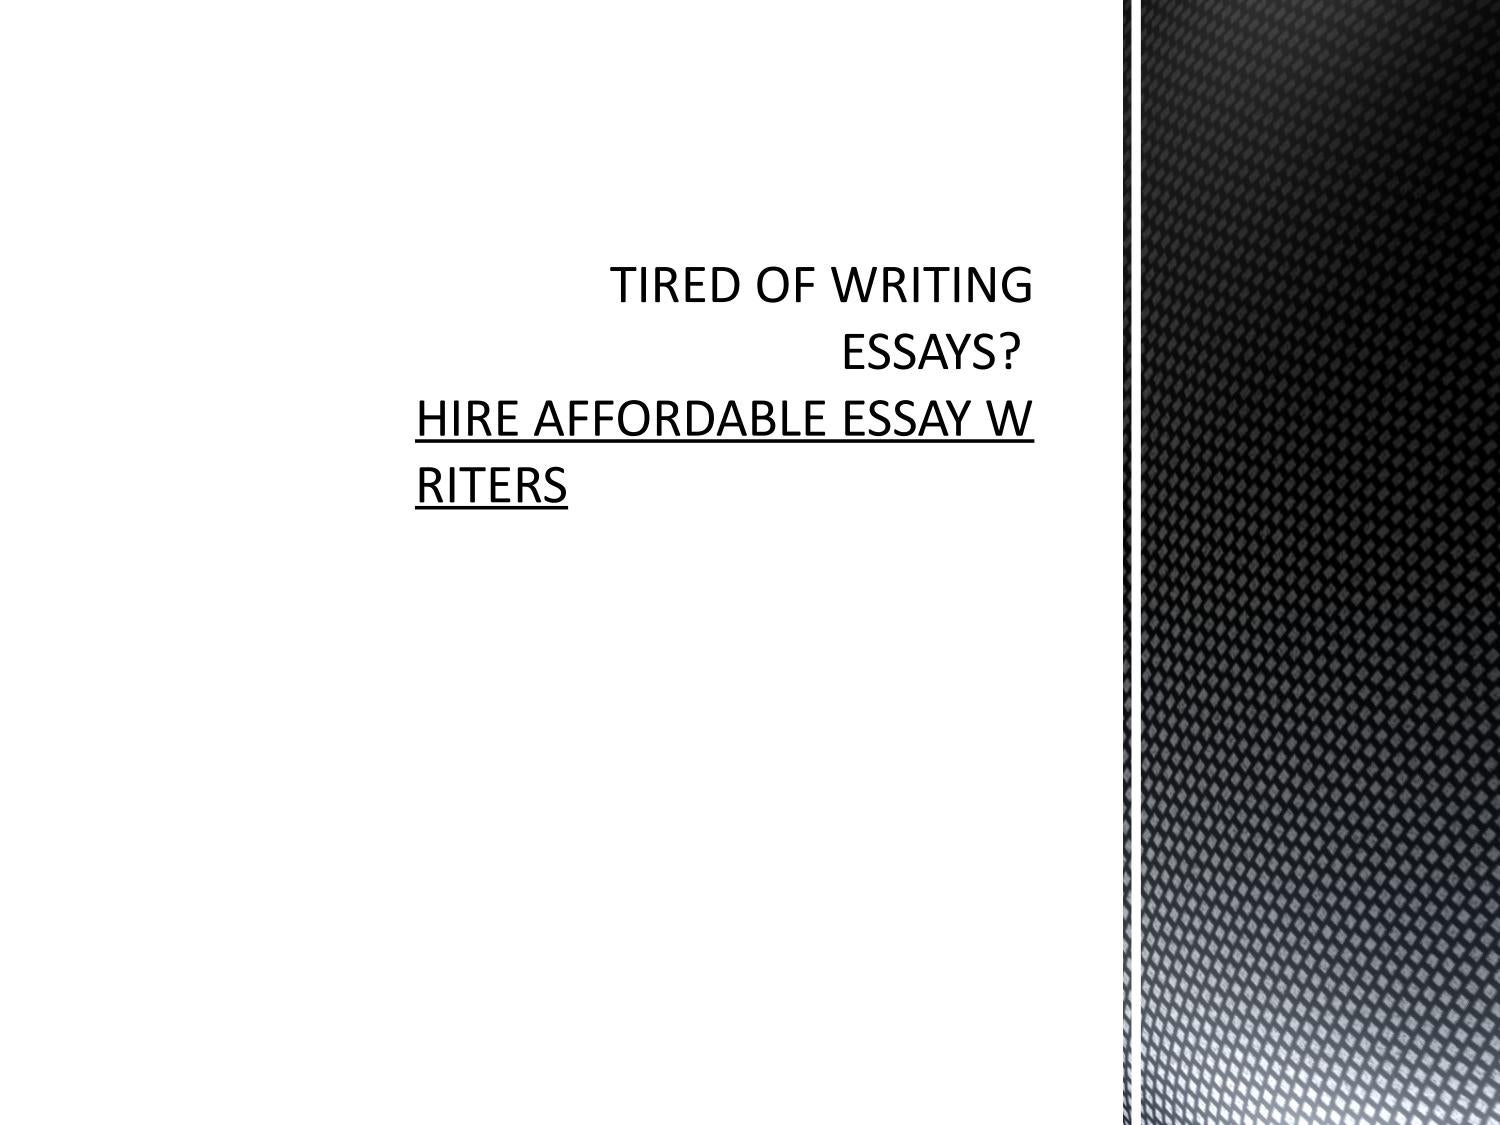 tired of writing essays hire affordable essay writers by  tired of writing essays hire affordable essay writers by myassignmenthelp issuu